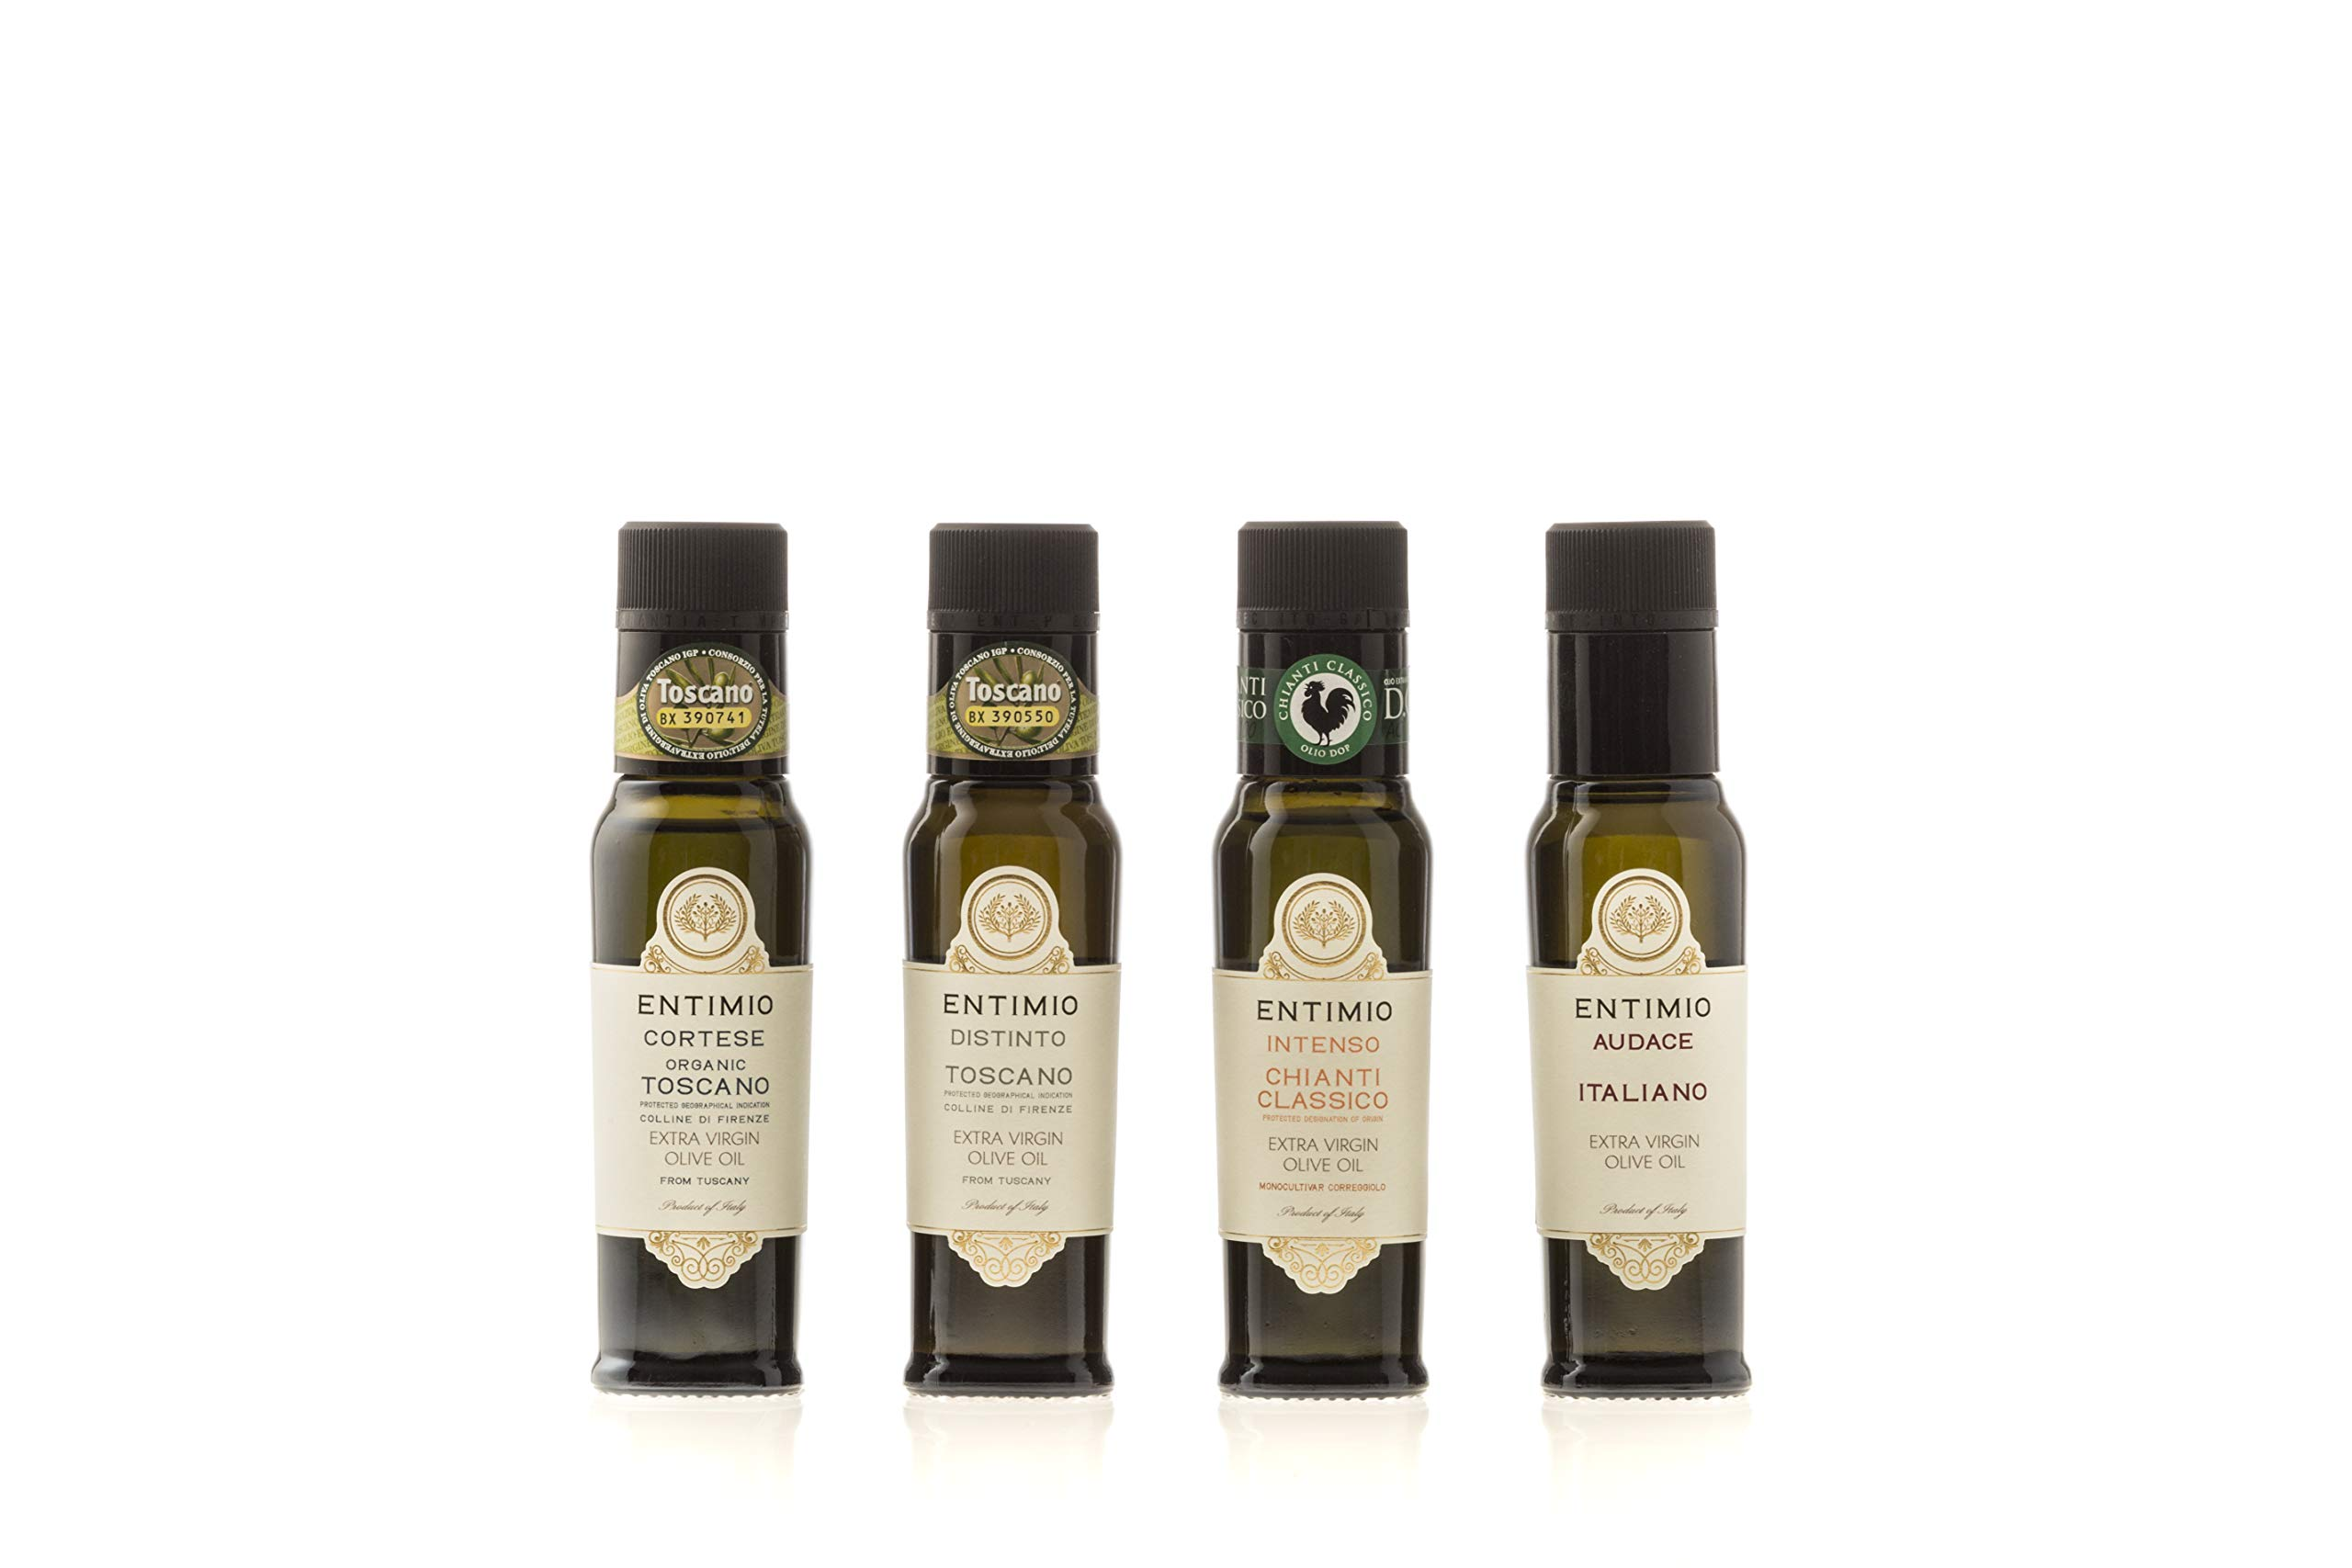 Entimio Collection Gift Box | Tuscany Olive Oil Extra Virgin, from Medium-Delicate to -Robust | 2018 Harvest, 2019 Gold Winners, Italy, High Antioxidants | 13.5 fl oz (Pack of 4 x 3.4 fl oz)